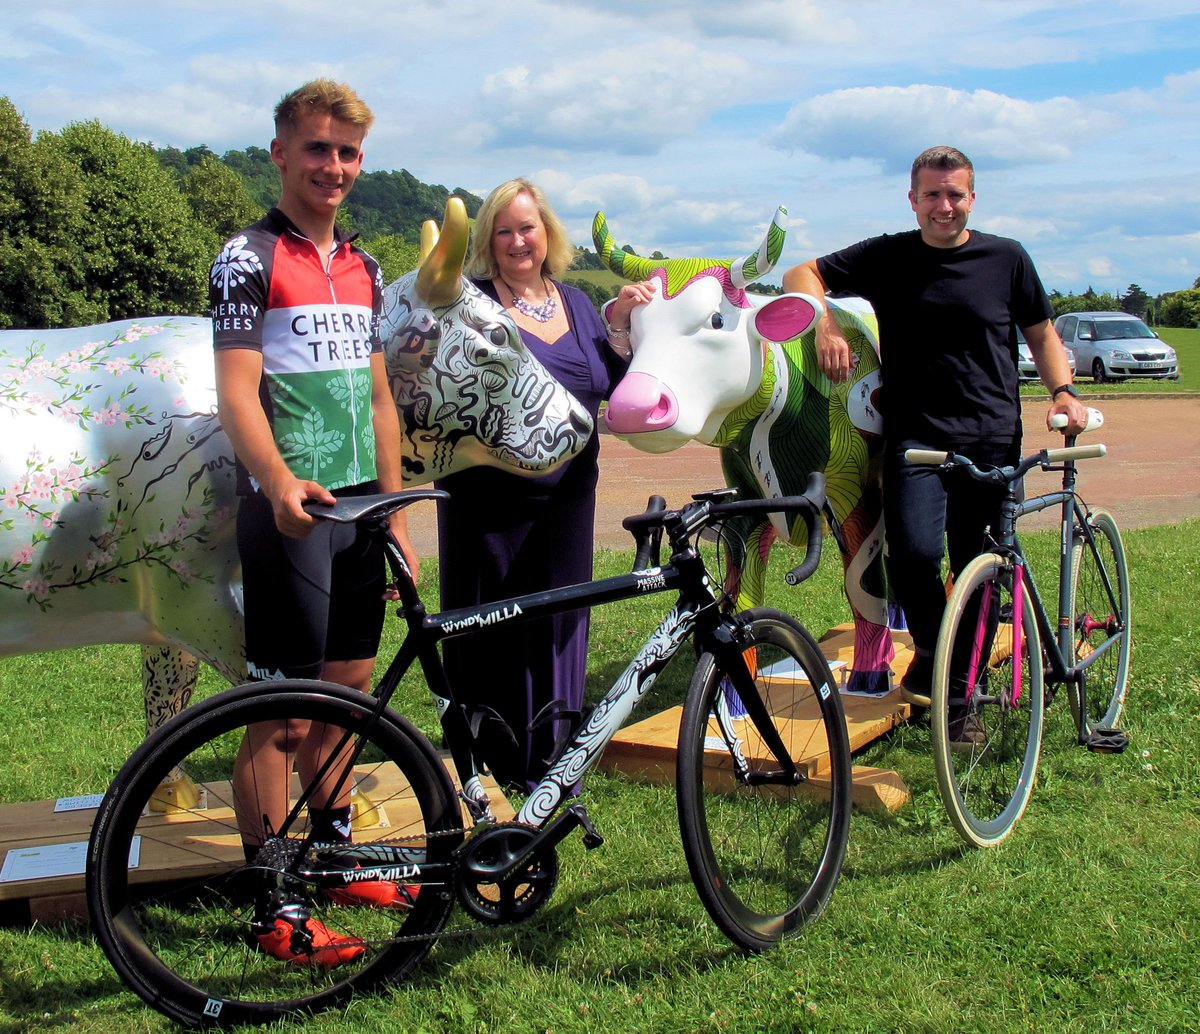 Via @CowParadeSurrey: Cows featuring on @RideLondon route this weekend @SurreyLife https://t.co/Cc2NgHFQmH https://t.co/22IMX09vxO